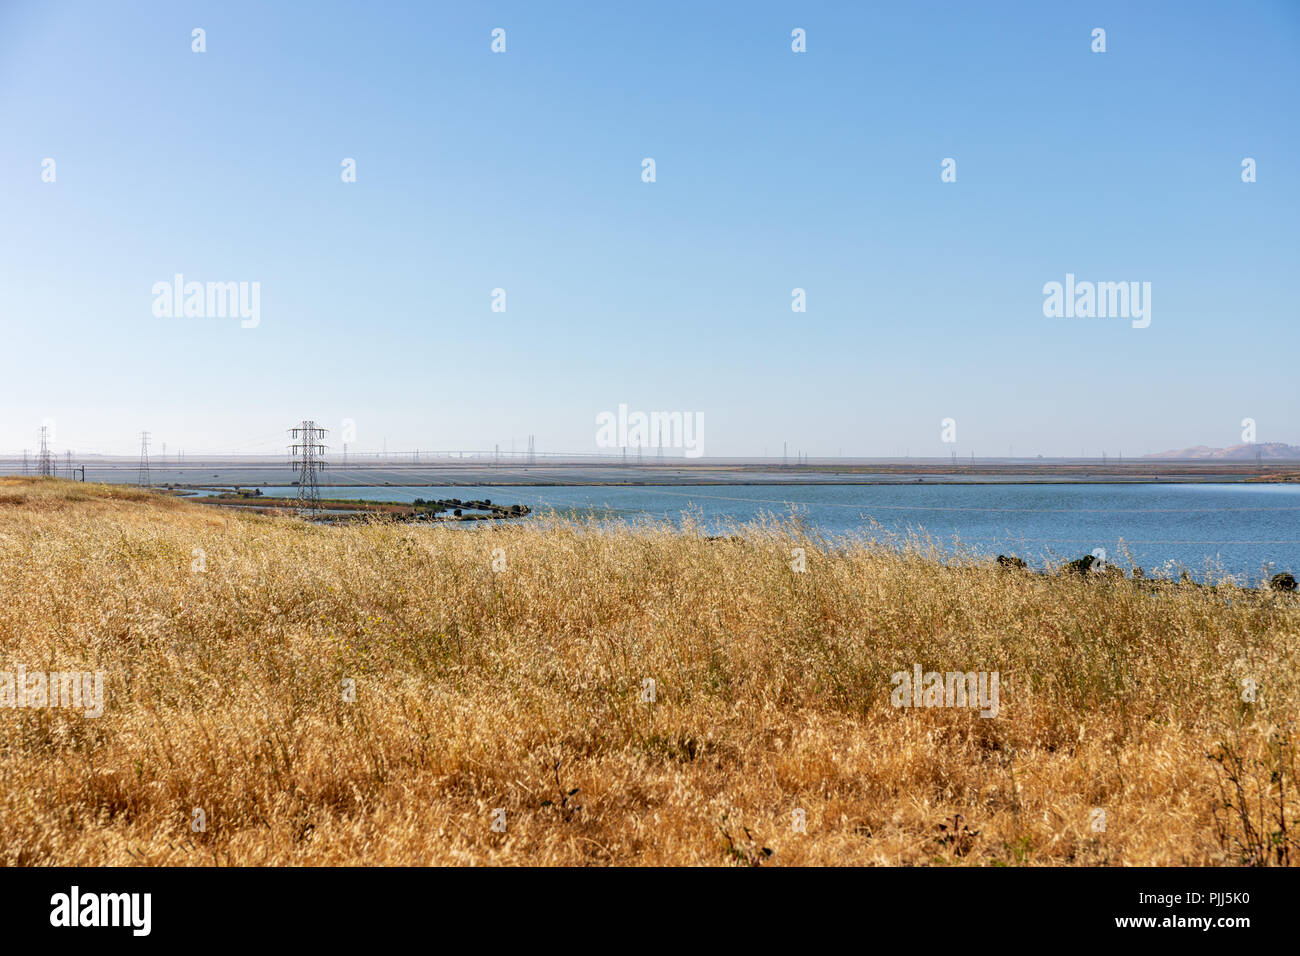 View over southern Bay Area from Sunnyvale Landfill; Sunnyvale, California - Stock Image